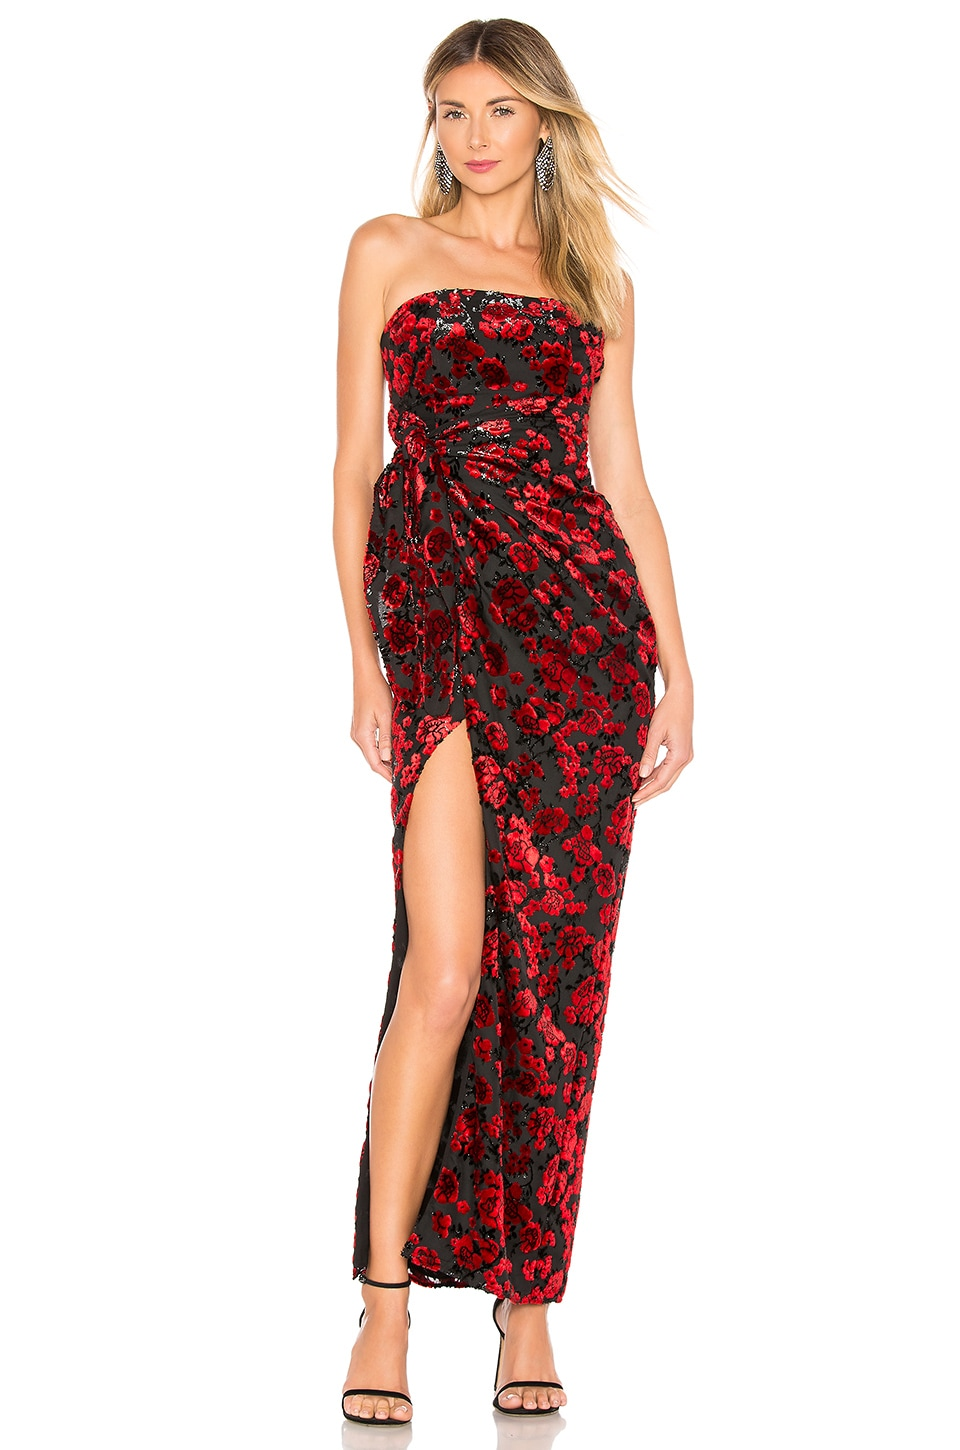 Lovers + Friends Beatriz Gown in Red & Black